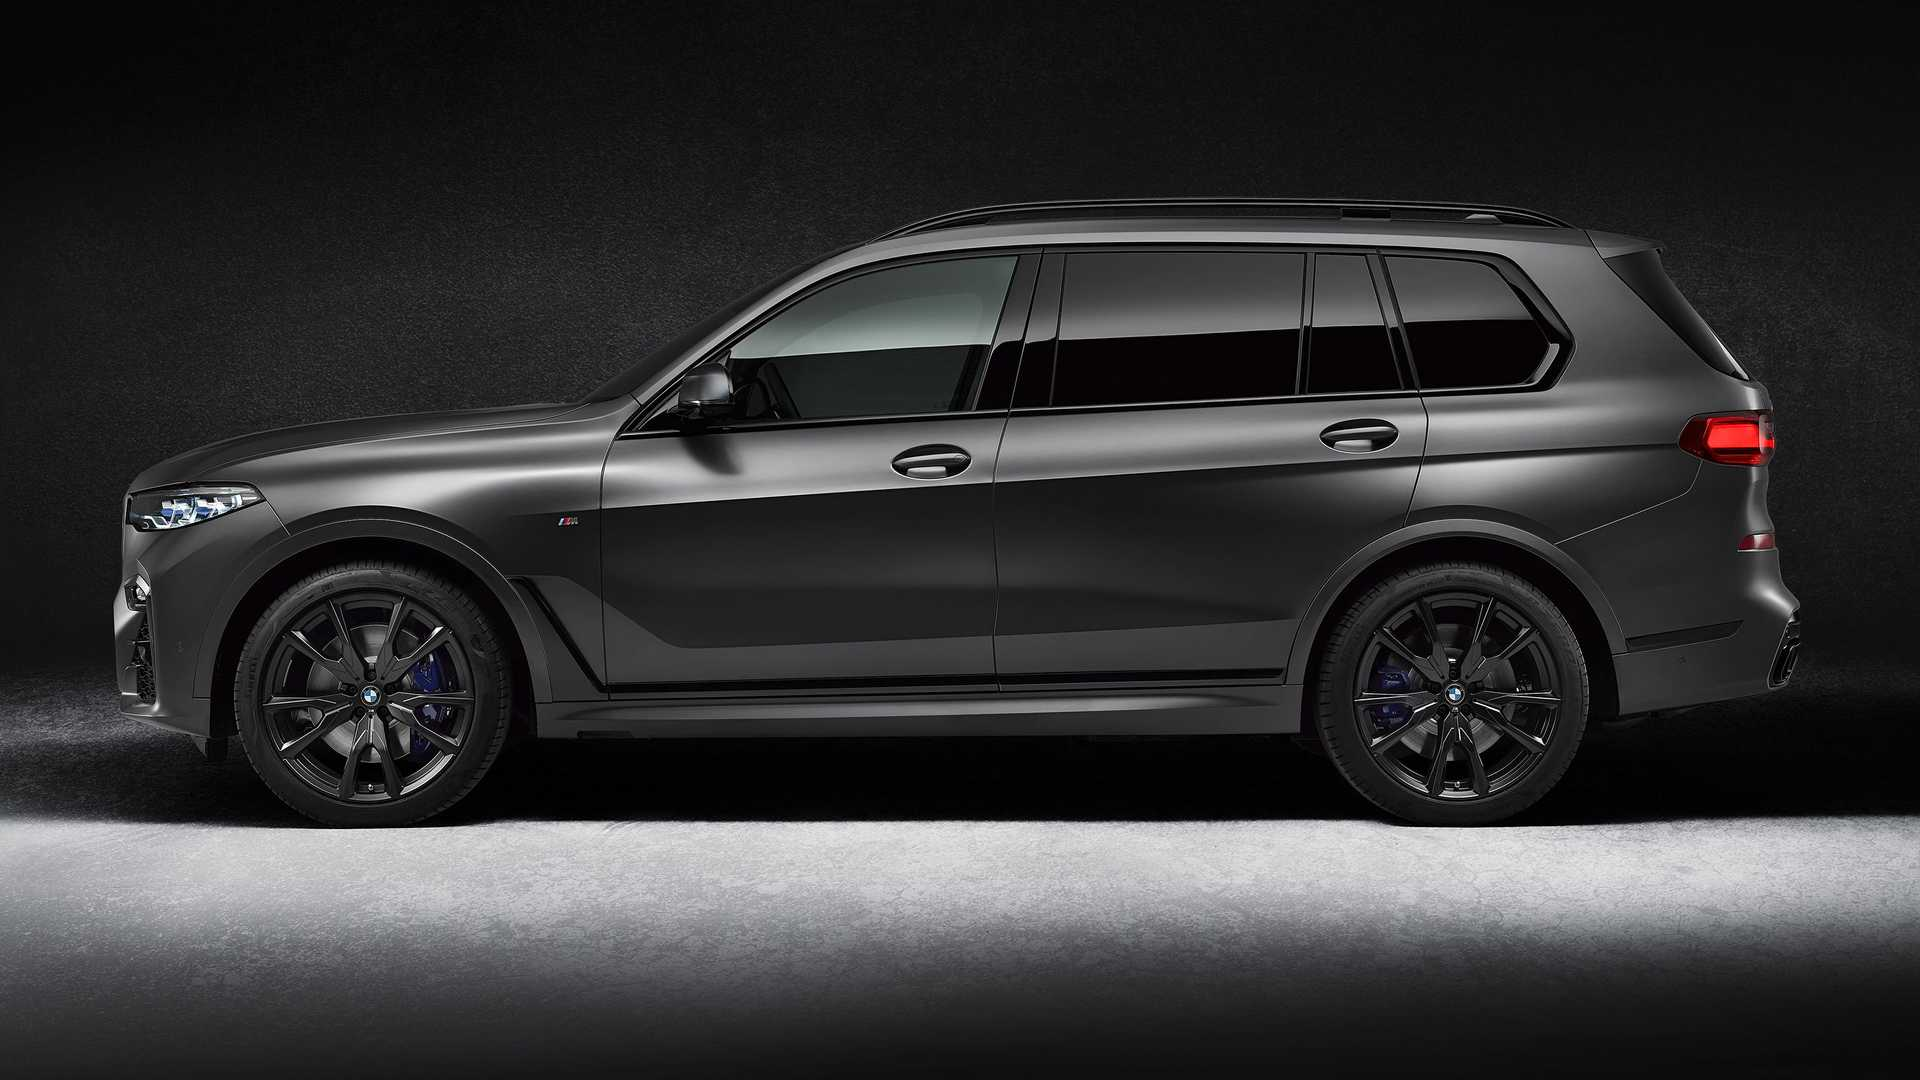 2021-bmw-x7-dark-shadow-edition-profile.jpg